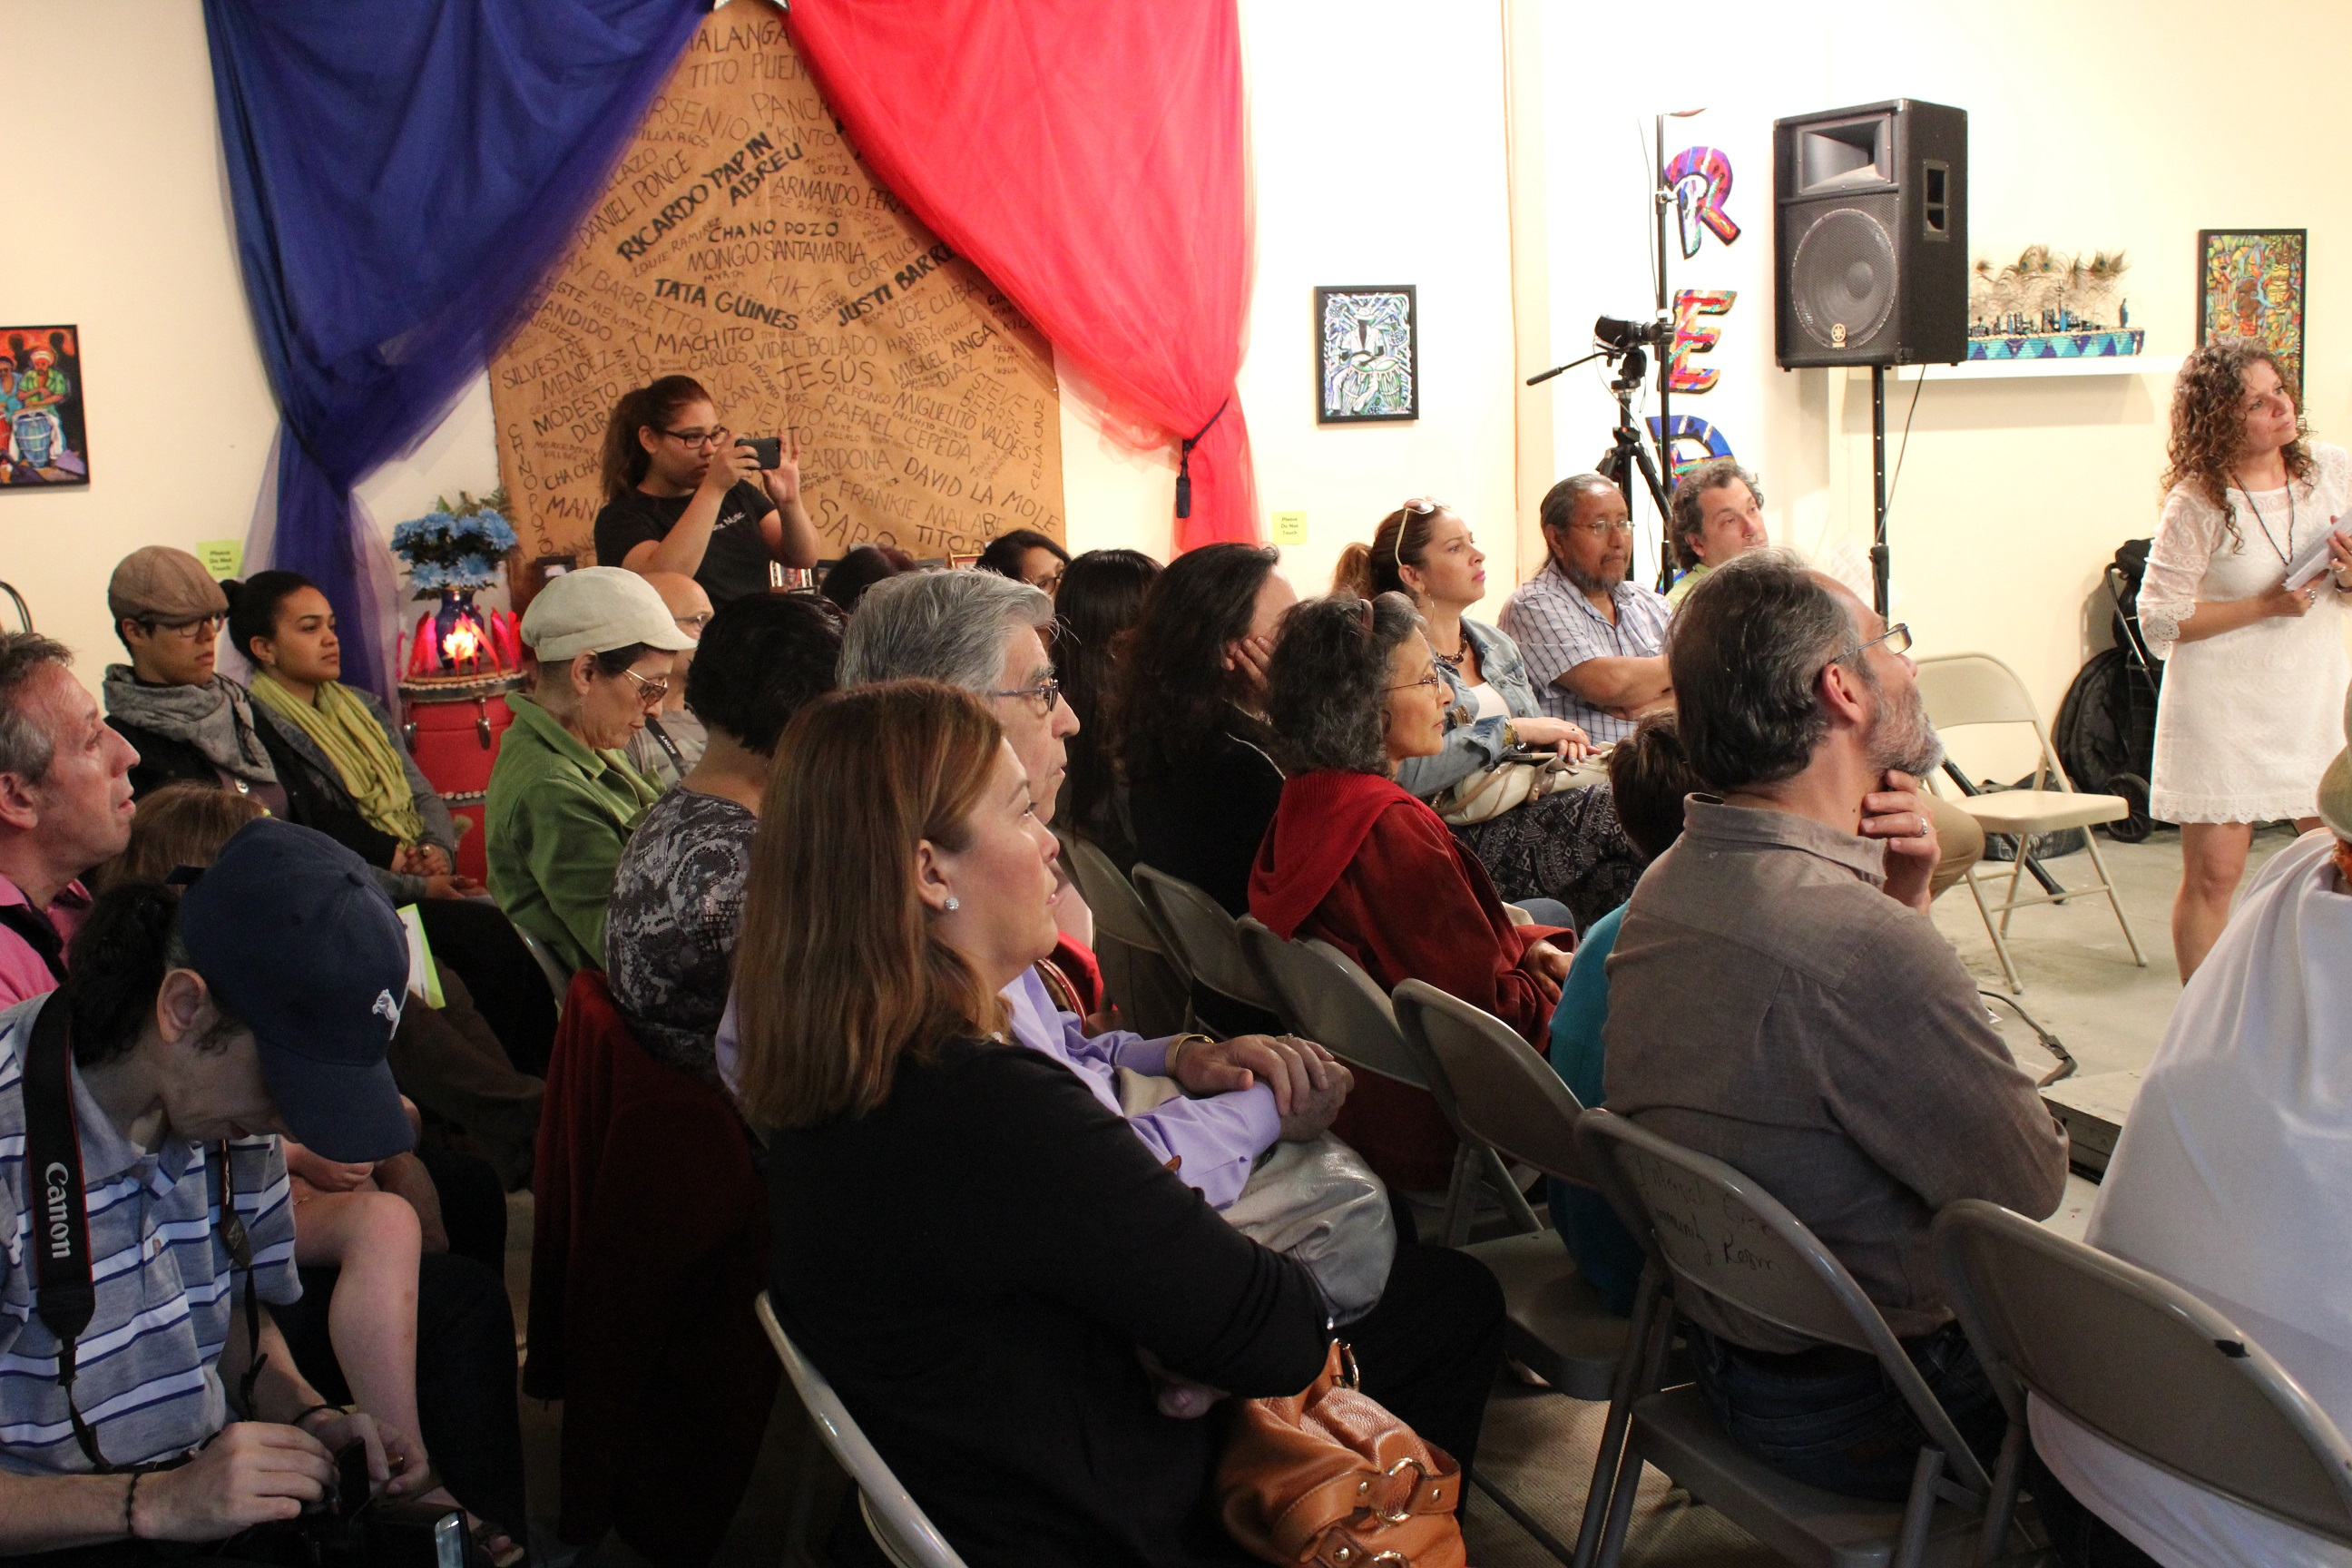 Crowd at Bronx Music Heritage Center lab.